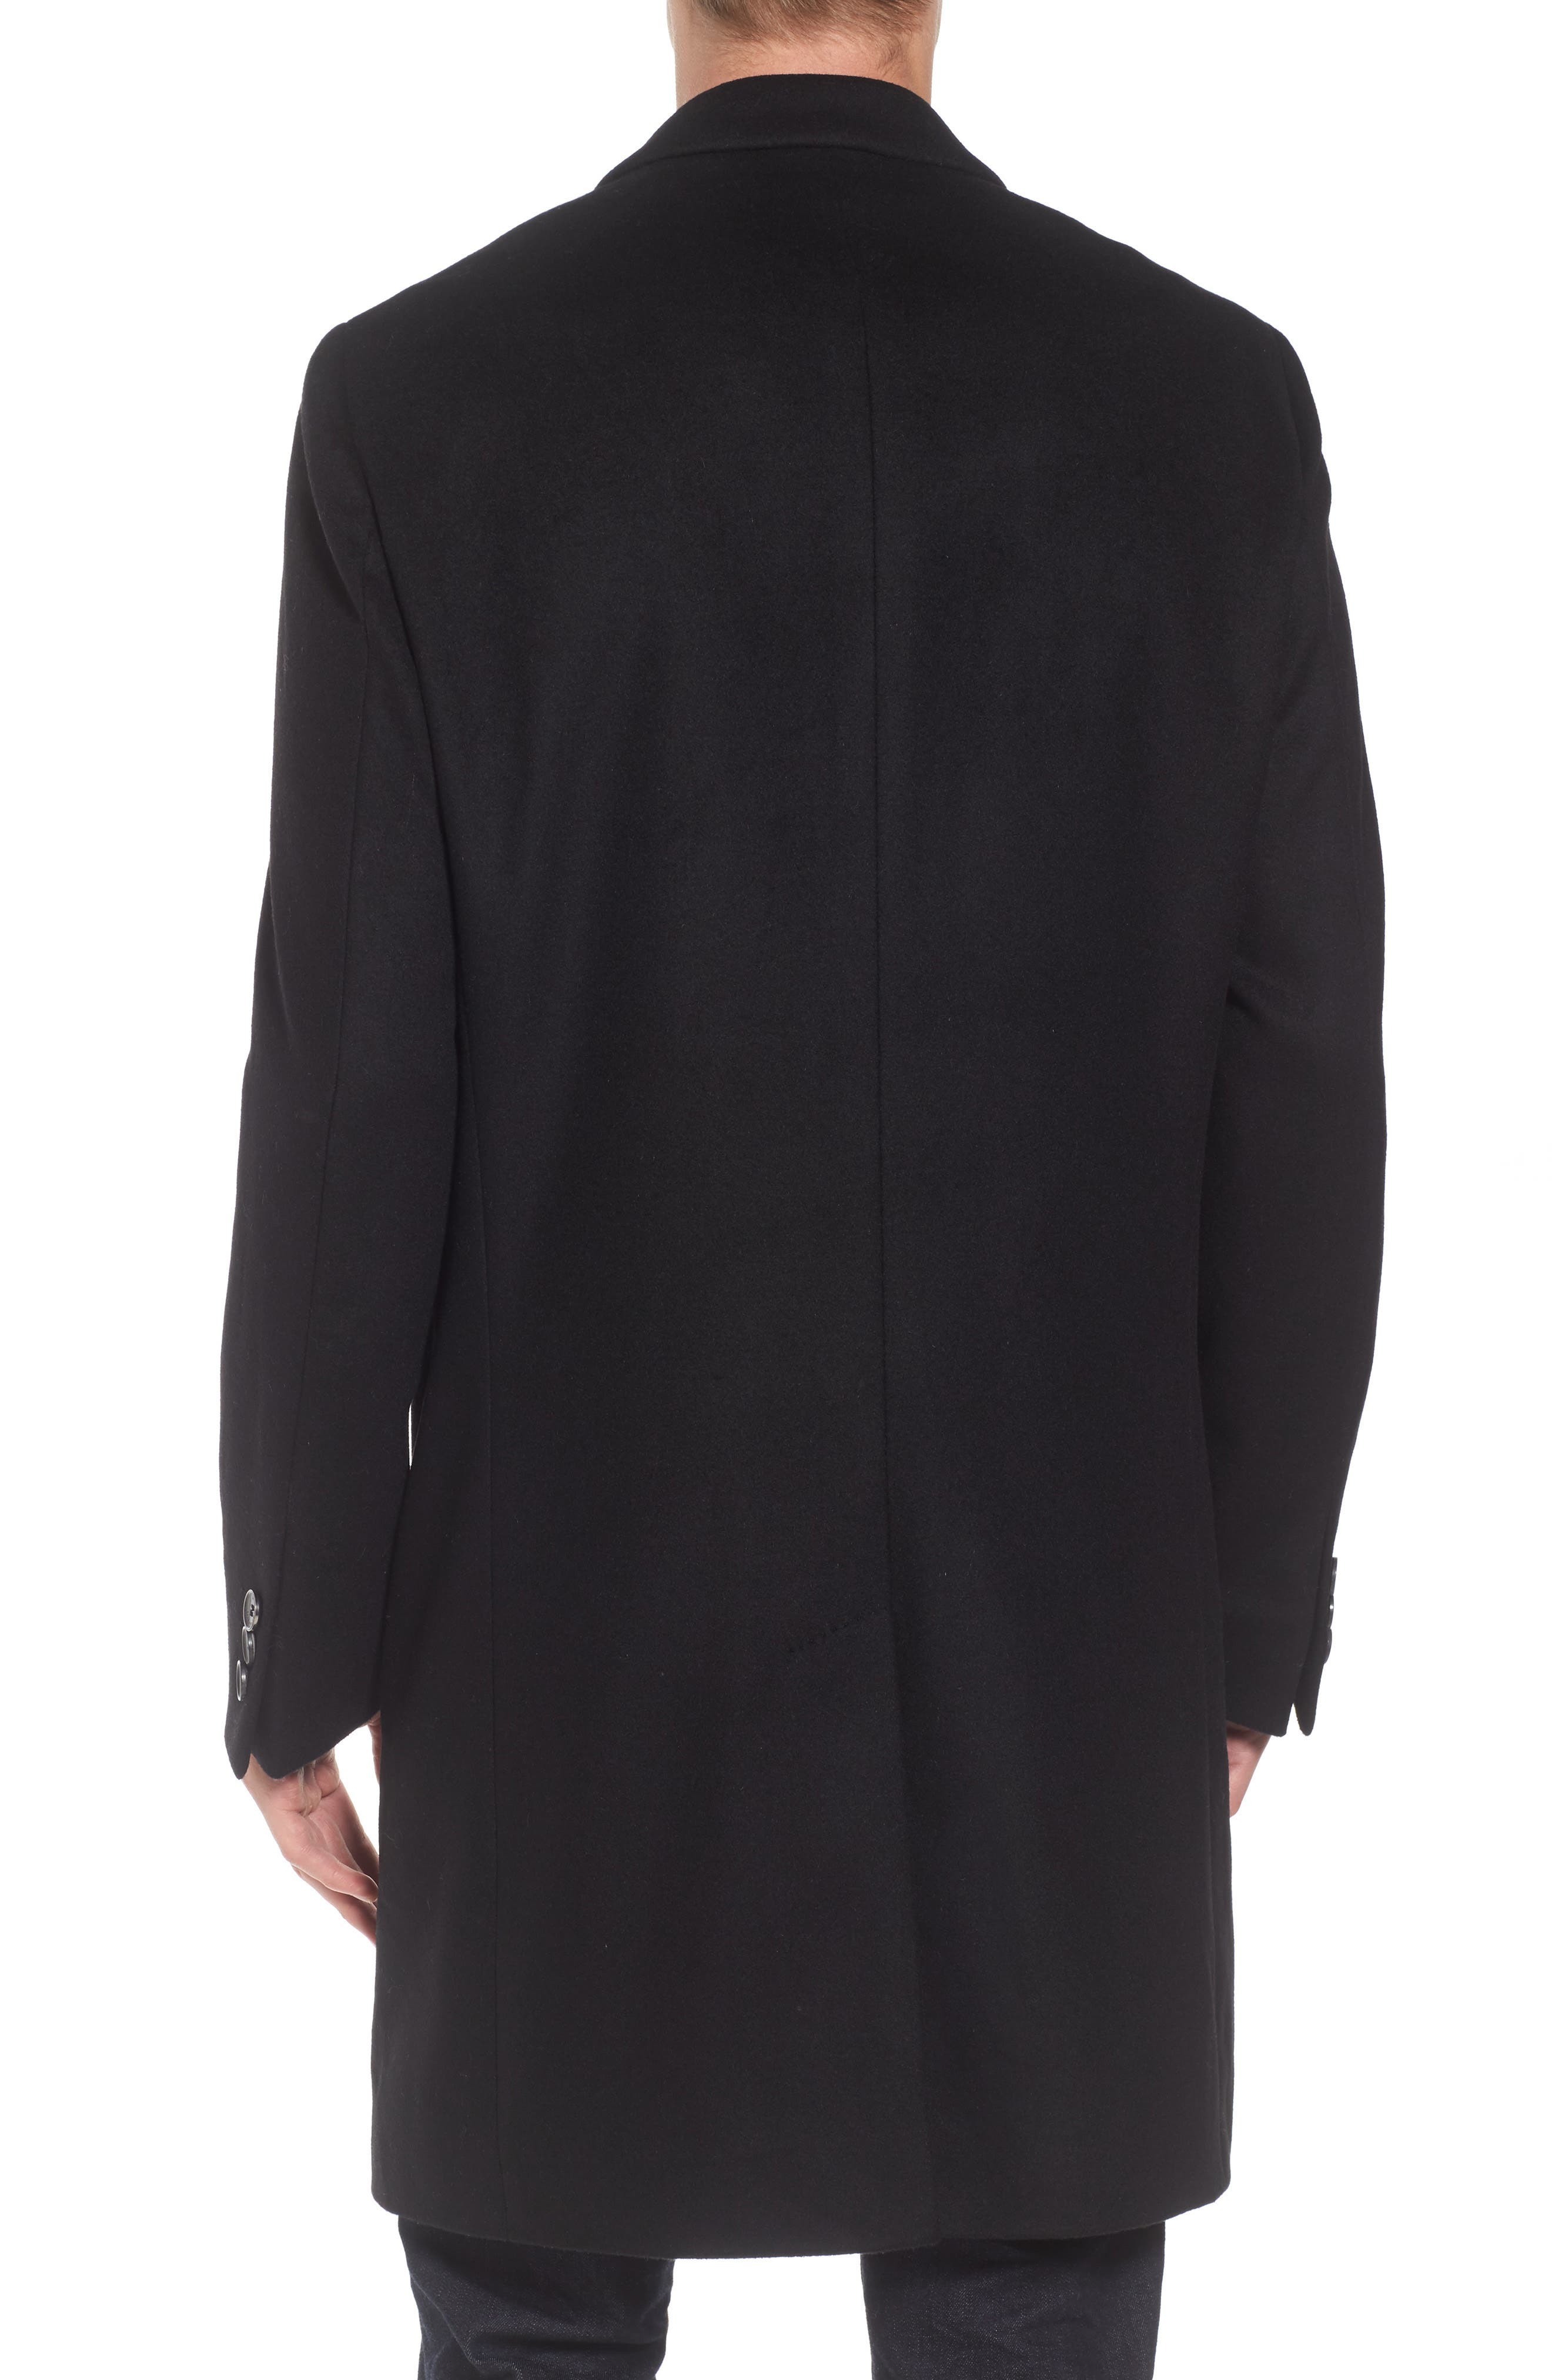 Nye Wool & Cashmere Topcoat,                             Alternate thumbnail 2, color,                             001